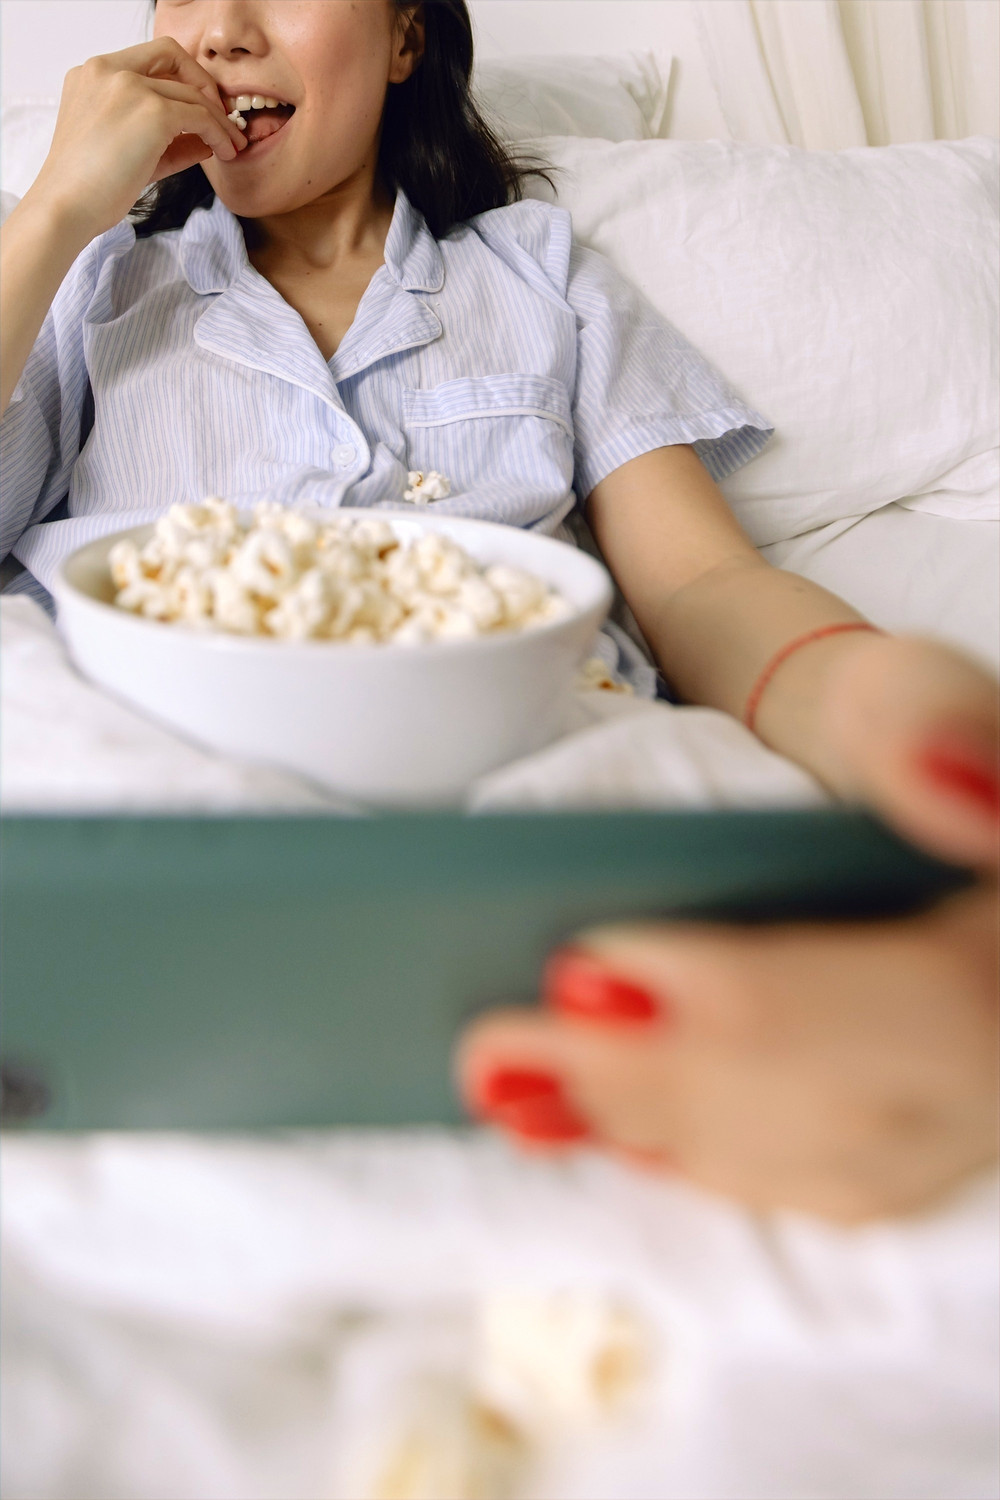 A woman wearing seersucker style pajamas holds a white bowl of popcorn delightedly raises a piece of popcorn to her mouth while capturing a photo on an iPhone.